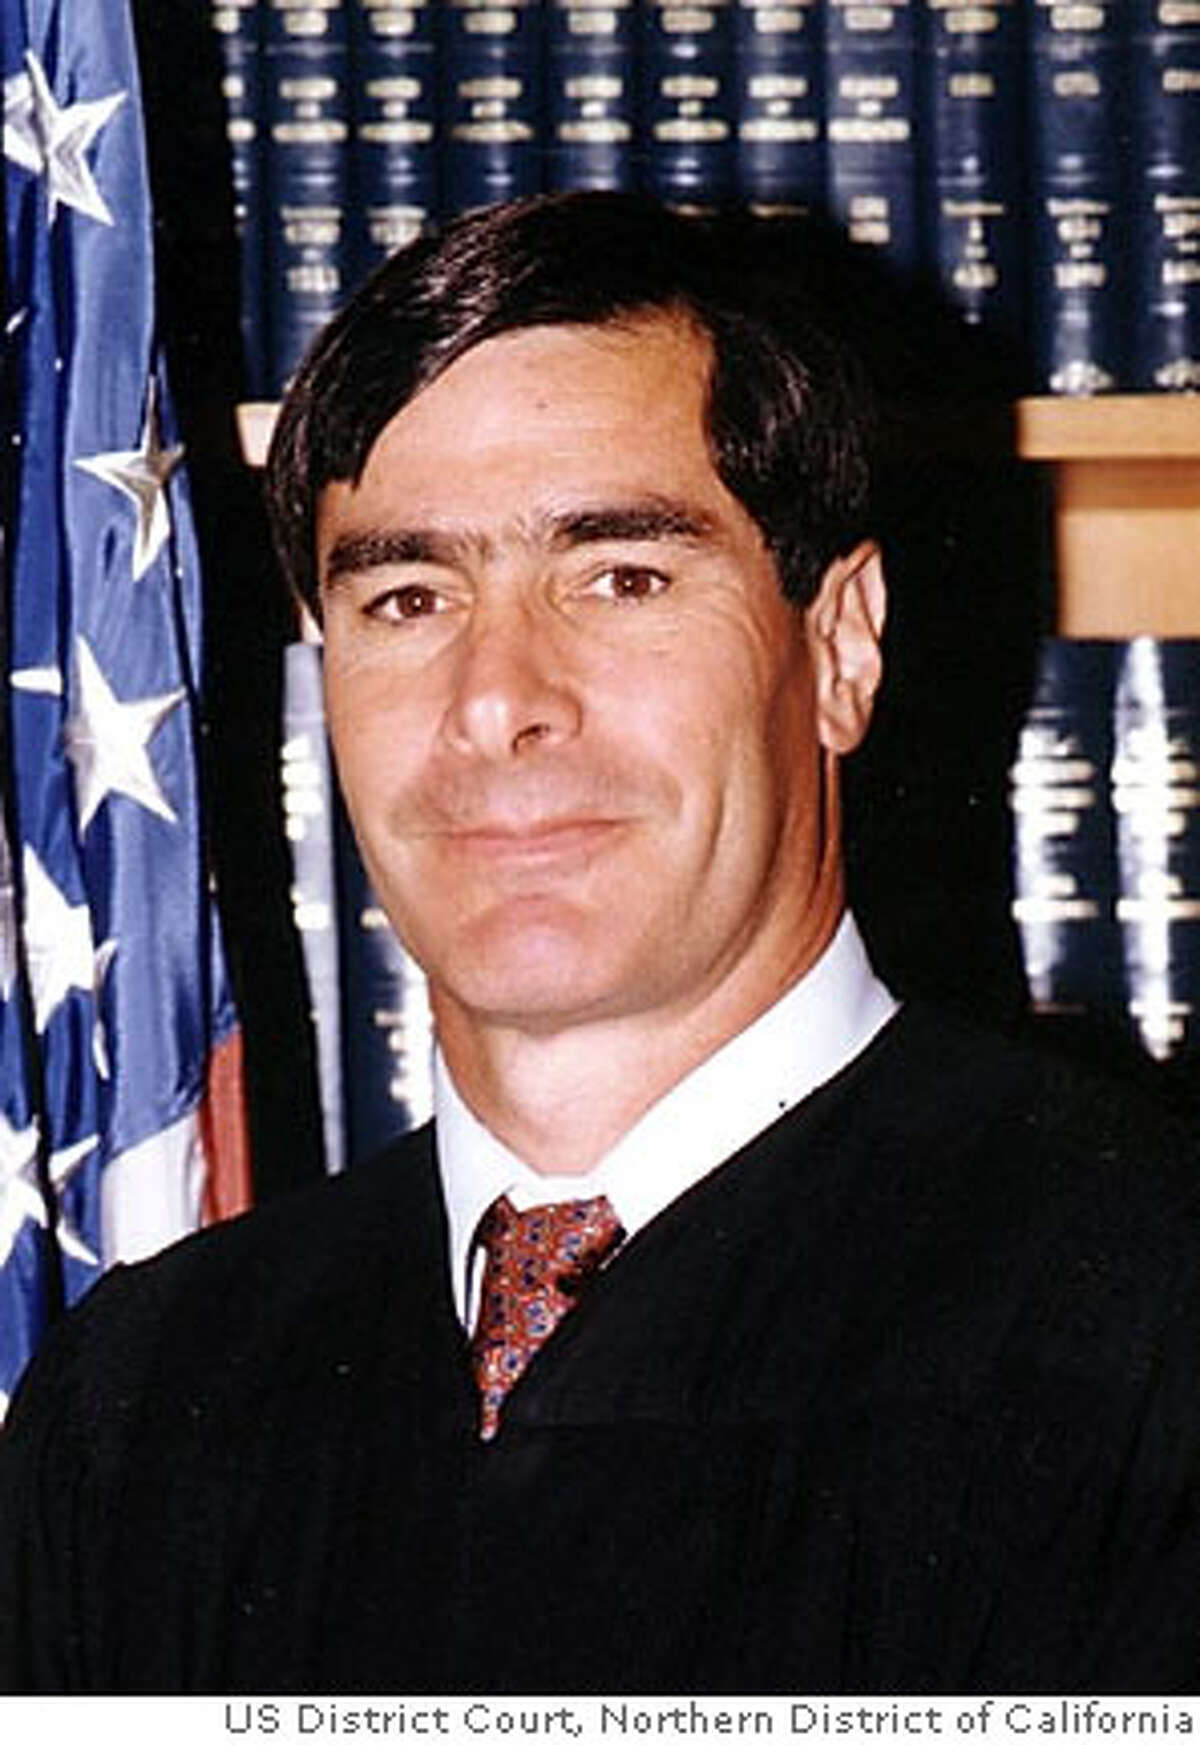 U.S. District Judge Jeremy Fogel is shown in an undated handout photo. Fogel warned that he may postpone California's chaotic Oct. 7 recall election over voting rights questions, and ordered one county to refrain from mailing out overseas ballots until the questions are resolved. The new uncertainty came Friday, Aug. 15, 2003, as a poll showed support building for the ouster of Gov. Gray Davis, and when a billionaire adviser to candidate Arnold Schwarzenegger was widely rebuked for suggesting California property taxes are too low. (handout) ALSO RAN 8/30/2003 09/06/03, 04/22/04 Ran on: 09-26-2006 Judge Jeremy Fogel begins a hearing today on whether medical monitoring is needed for executions.